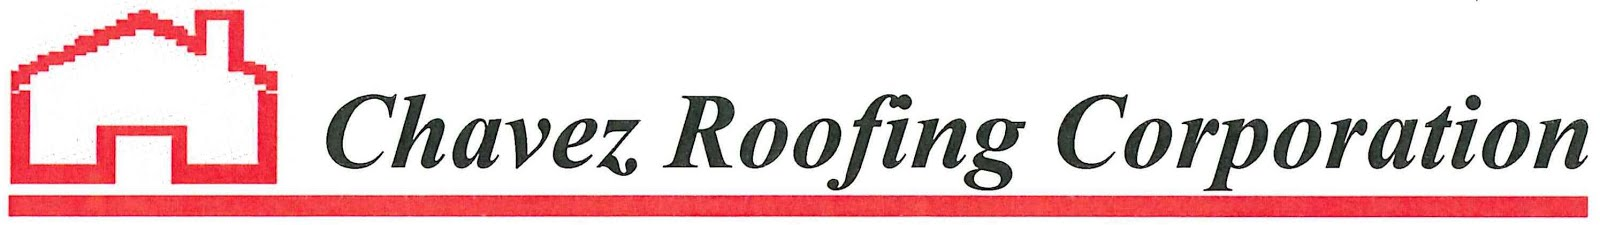 Chavez Roofing Corporation